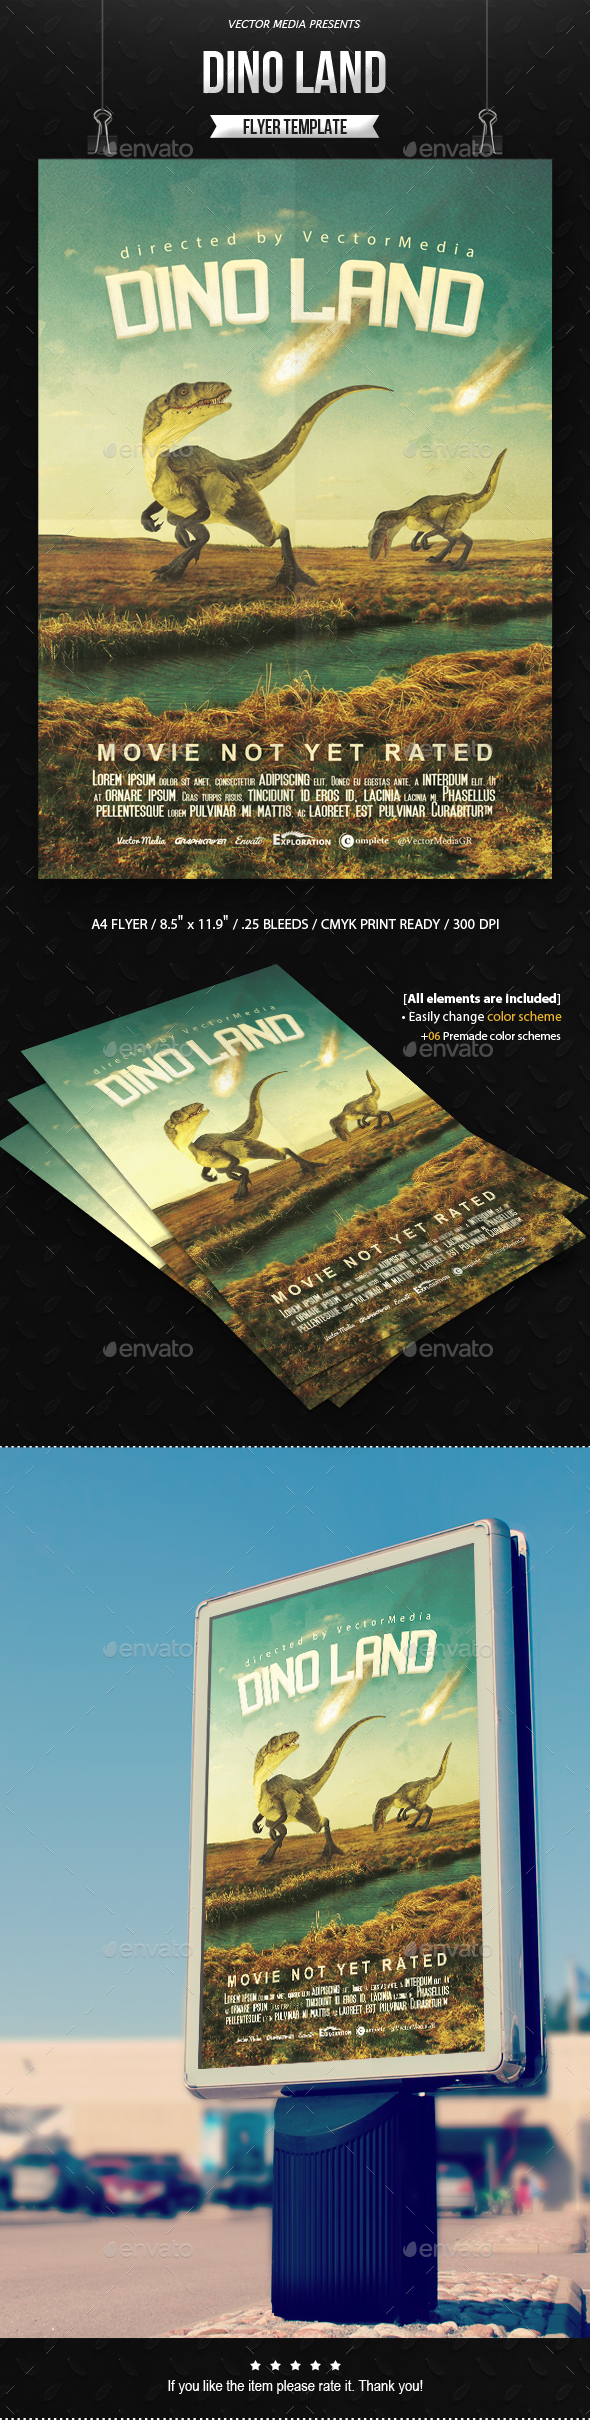 Dino Land - Movie Poster - Miscellaneous Events